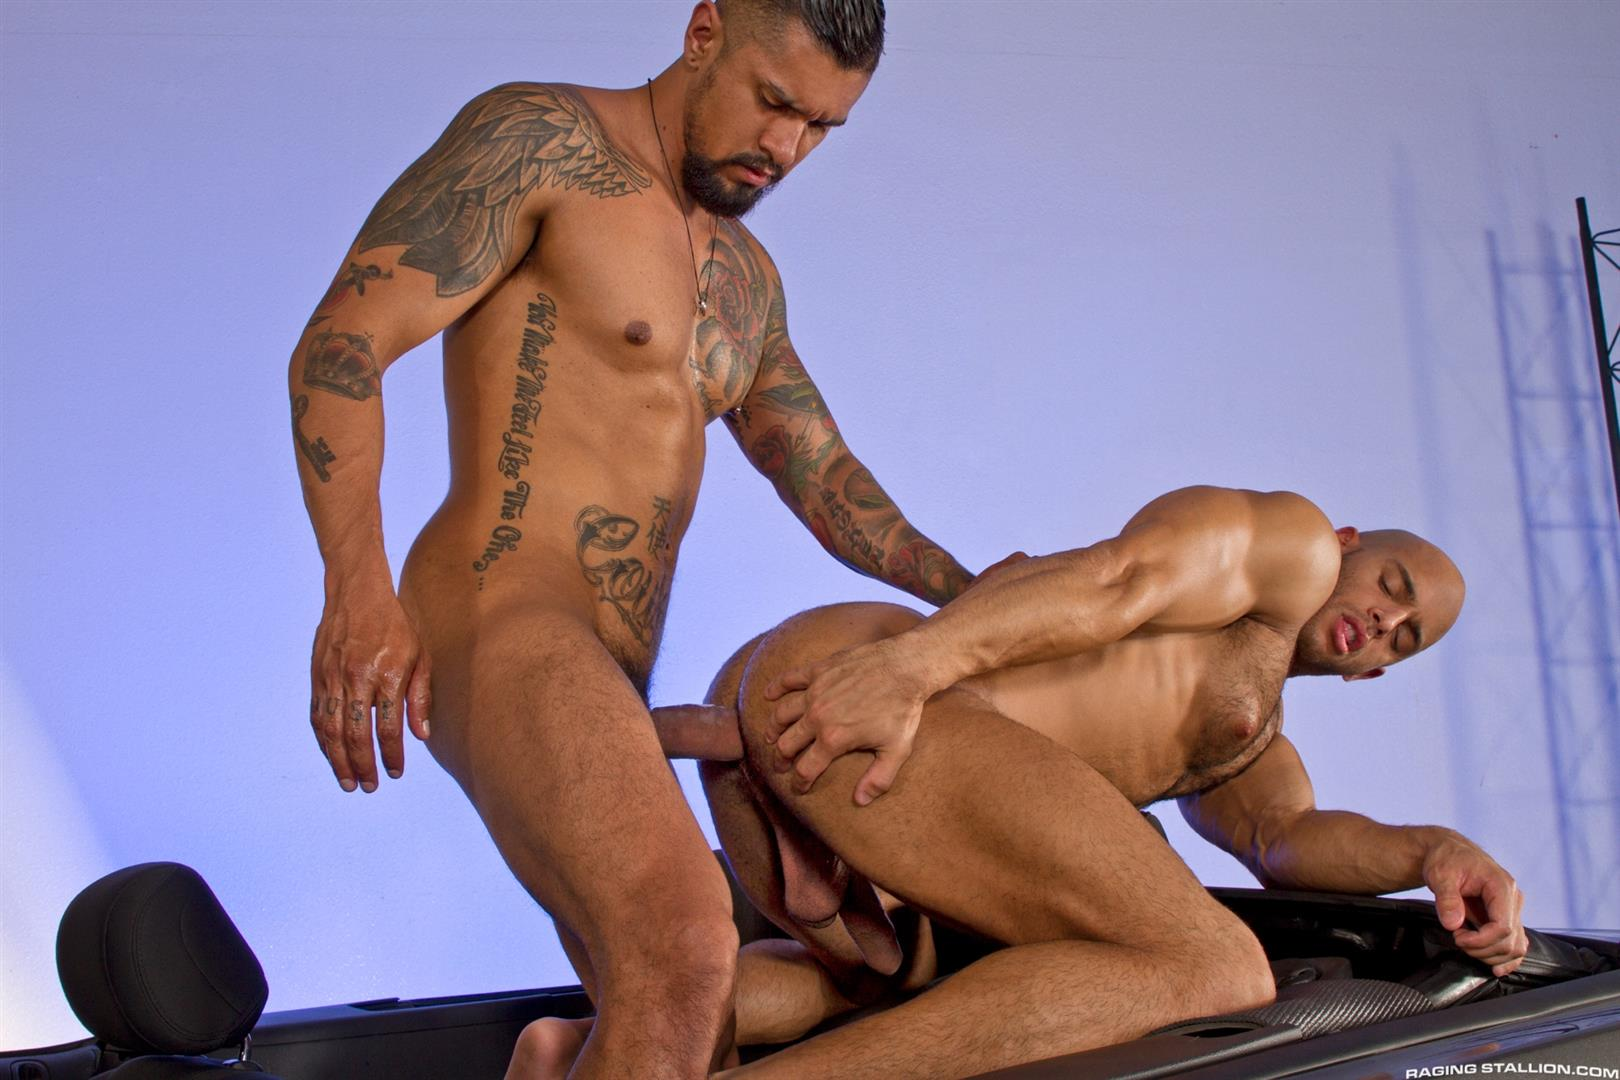 Raging Stallion Sean Zevran and Boomer Banks Bottoms For The First Time Big Uncut Cock Amateur Gay Porn 15 BREAKING NEWS: Boomer Banks Bottoms For The First Time With A Big Uncut Cock